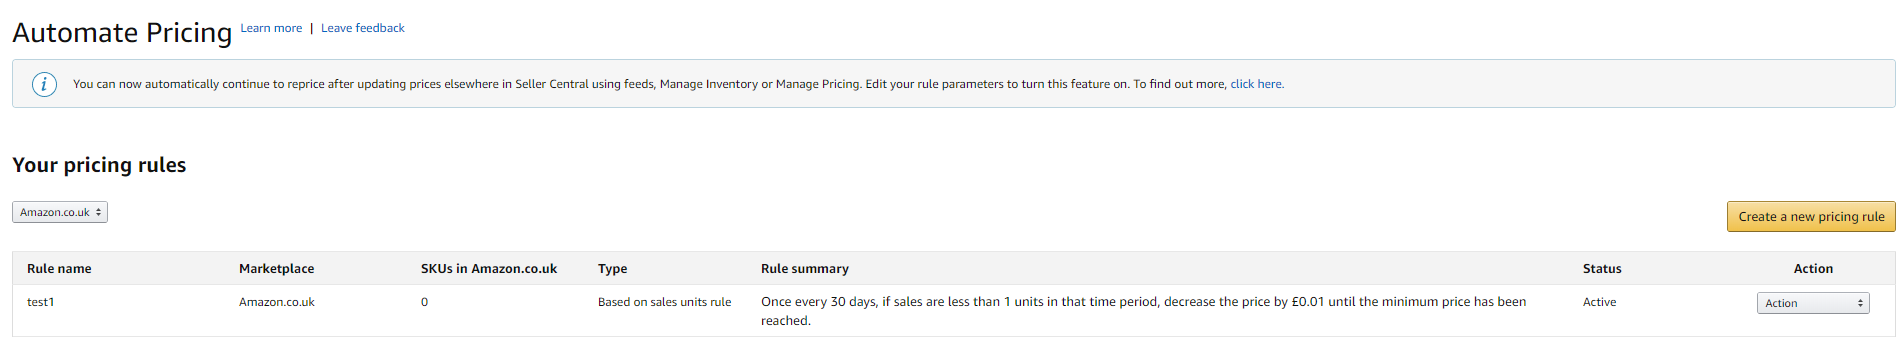 Amazon Automate Pricing